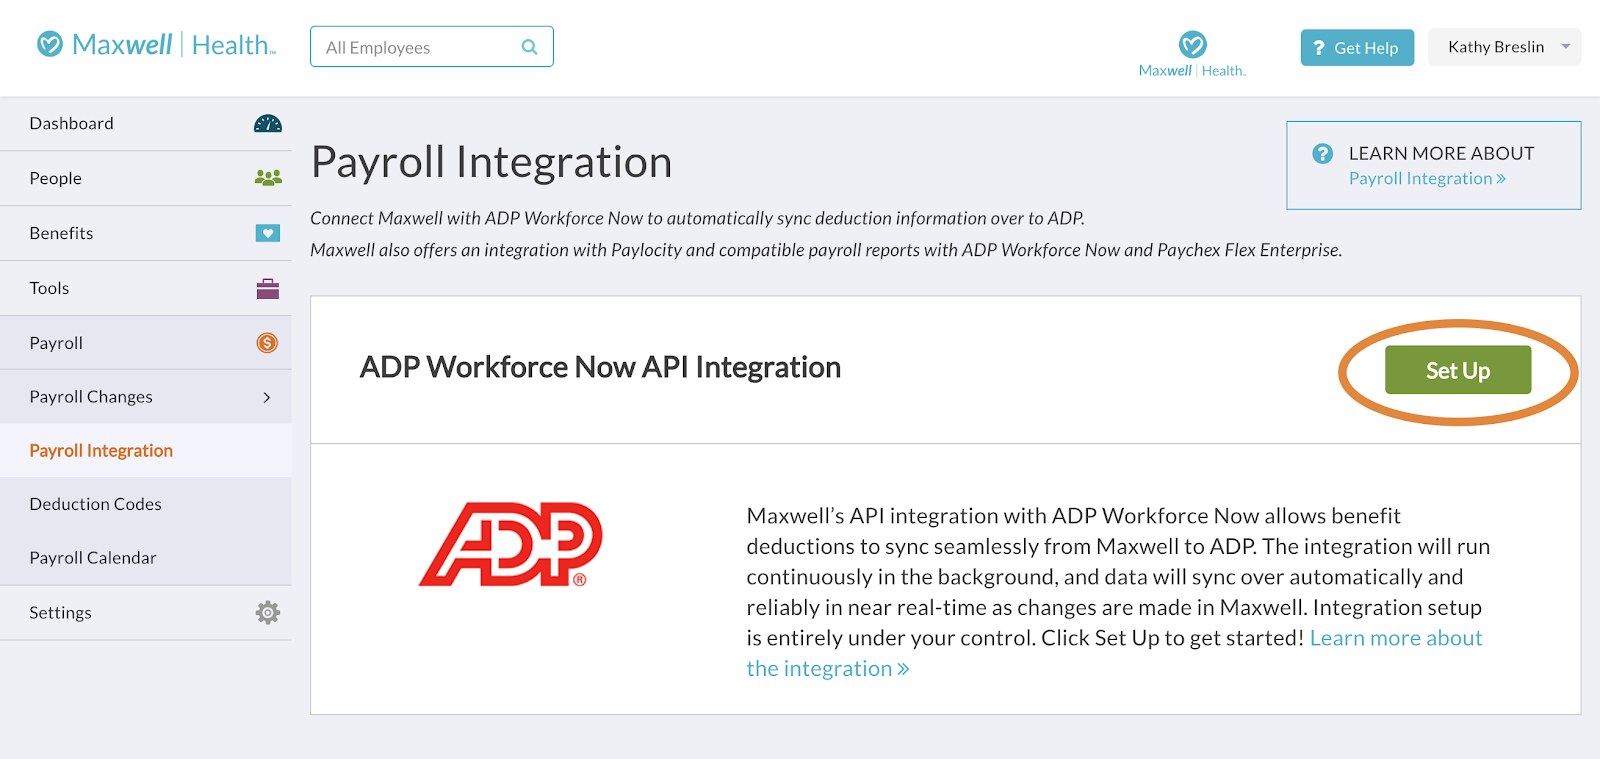 About the ADP Workforce Now API Integration – Support